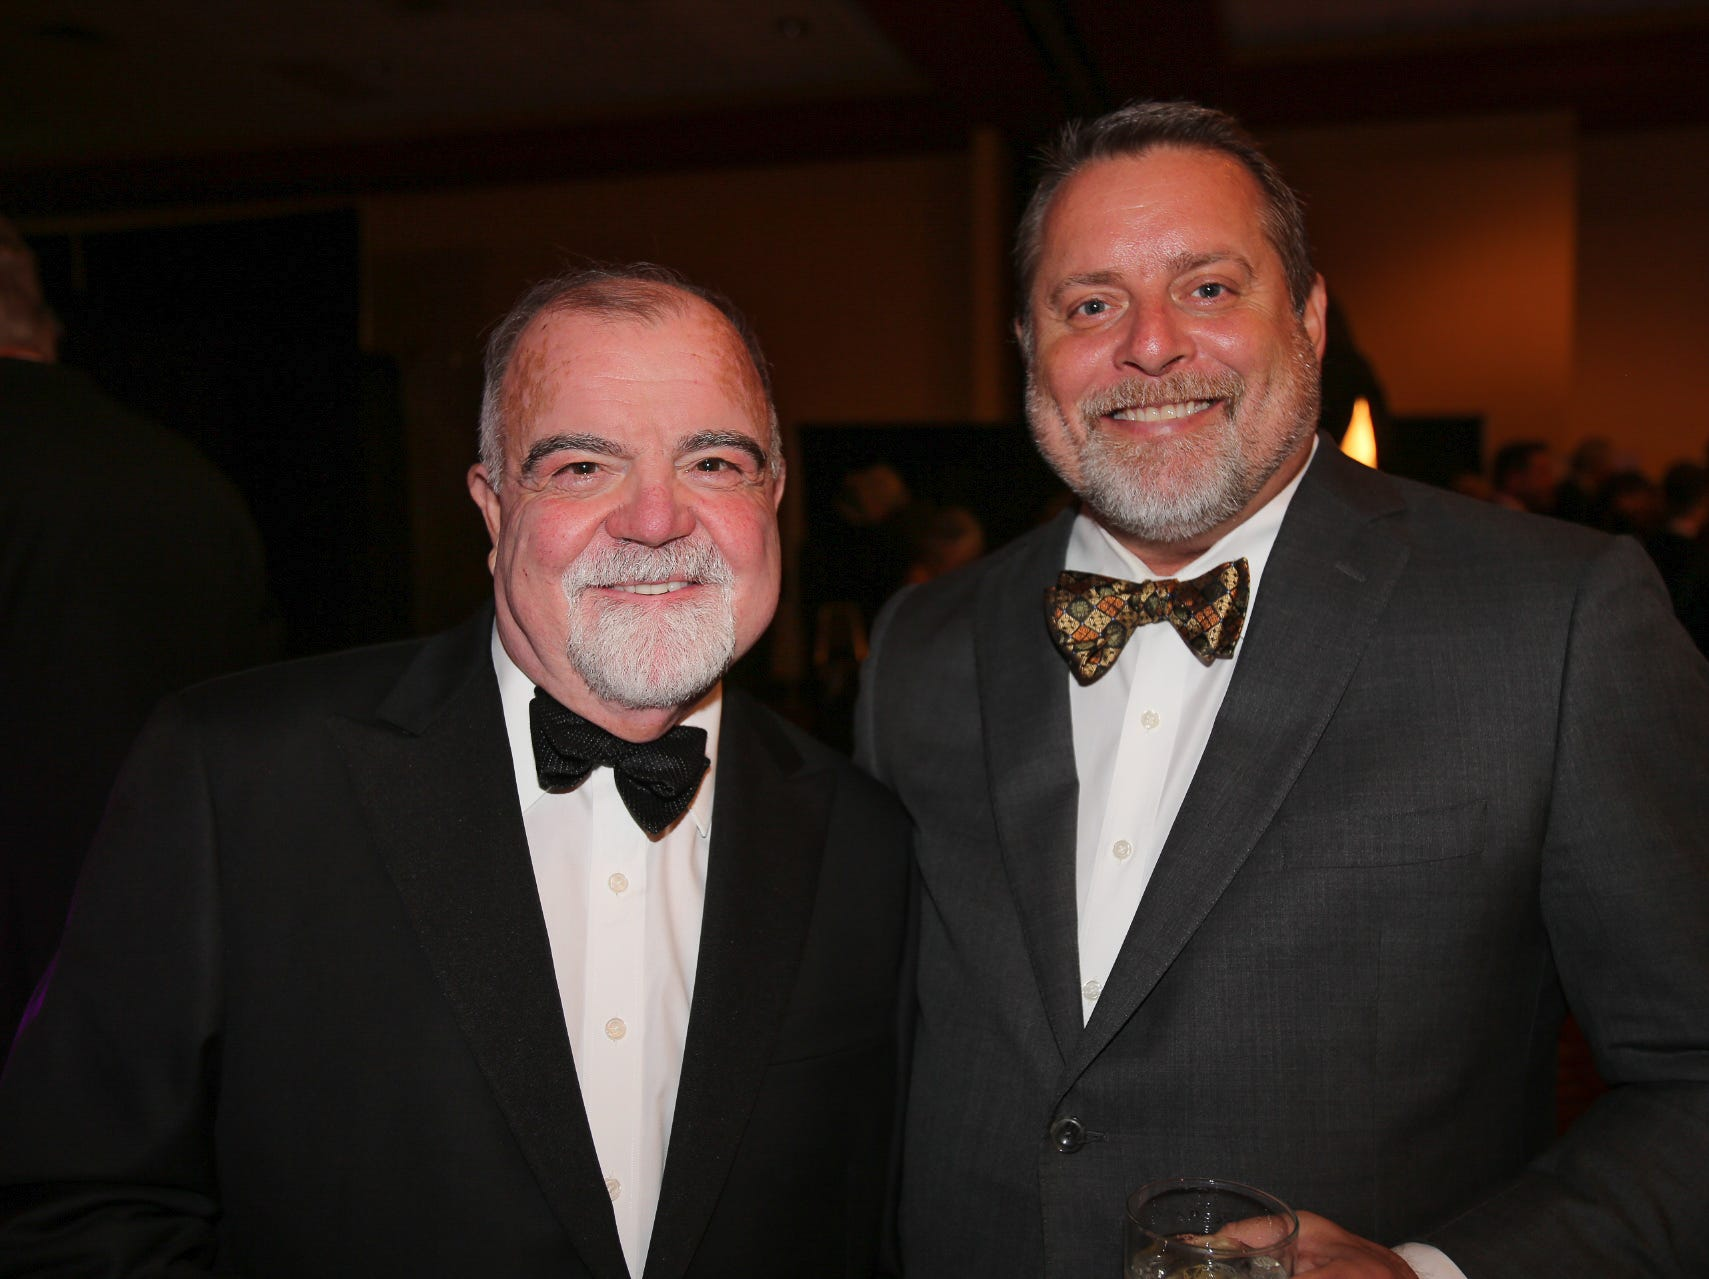 Frank Siano and Mike Tucker